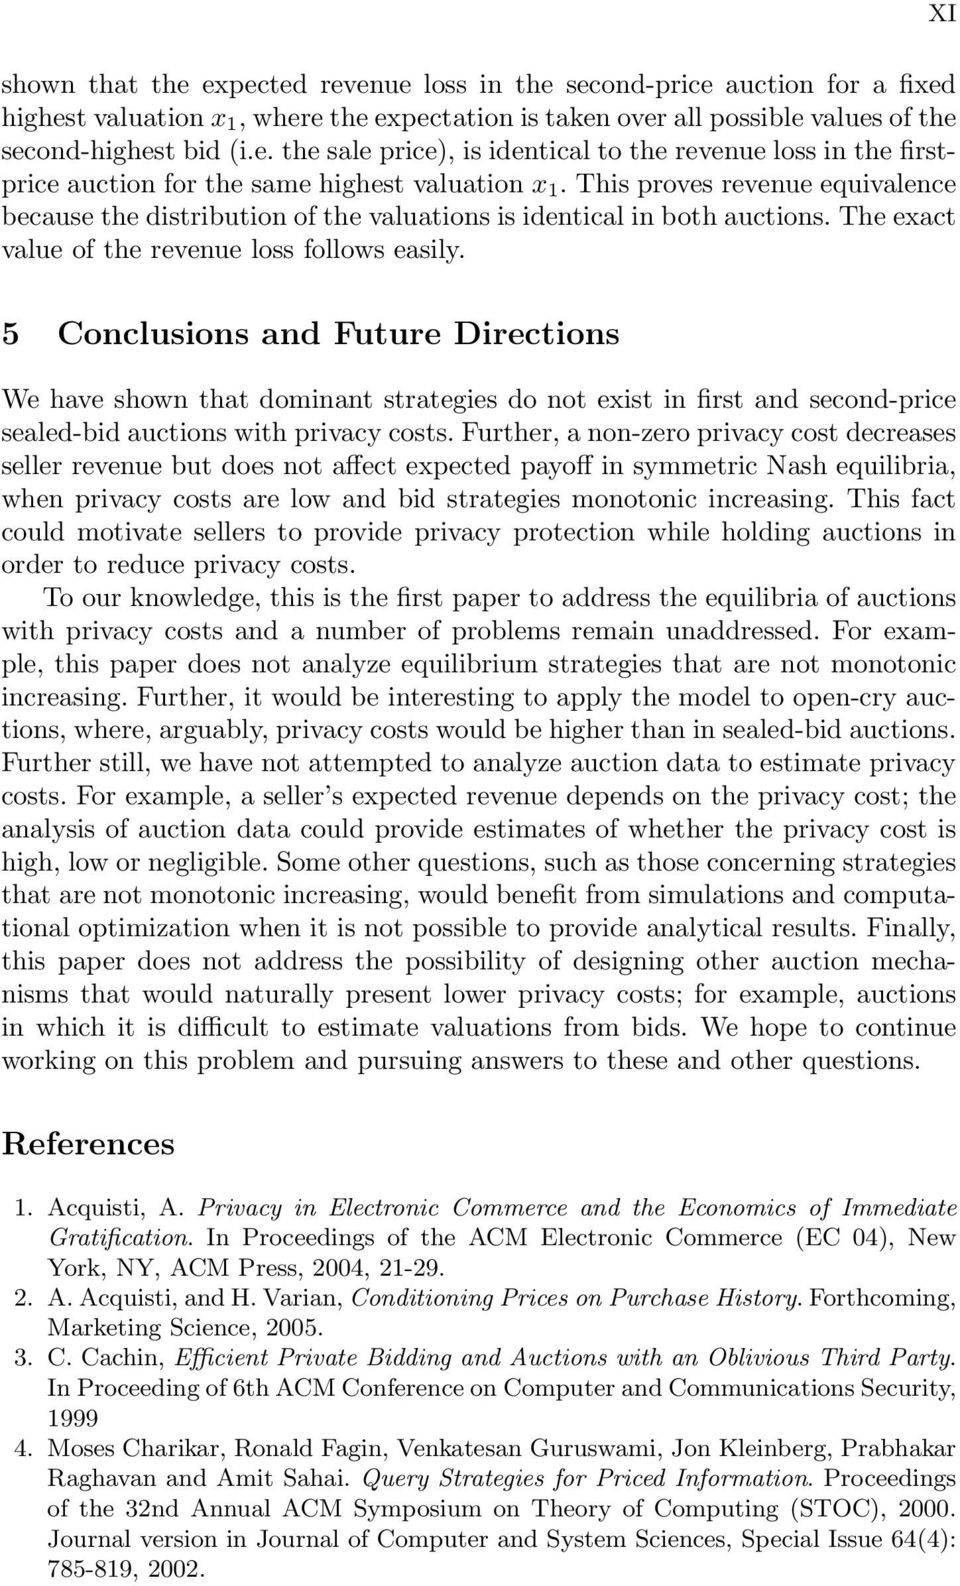 5 Conclusions and Future Directions We have shown that dominant strategies do not exist in first and second-price sealed-bid auctions with privacy costs.